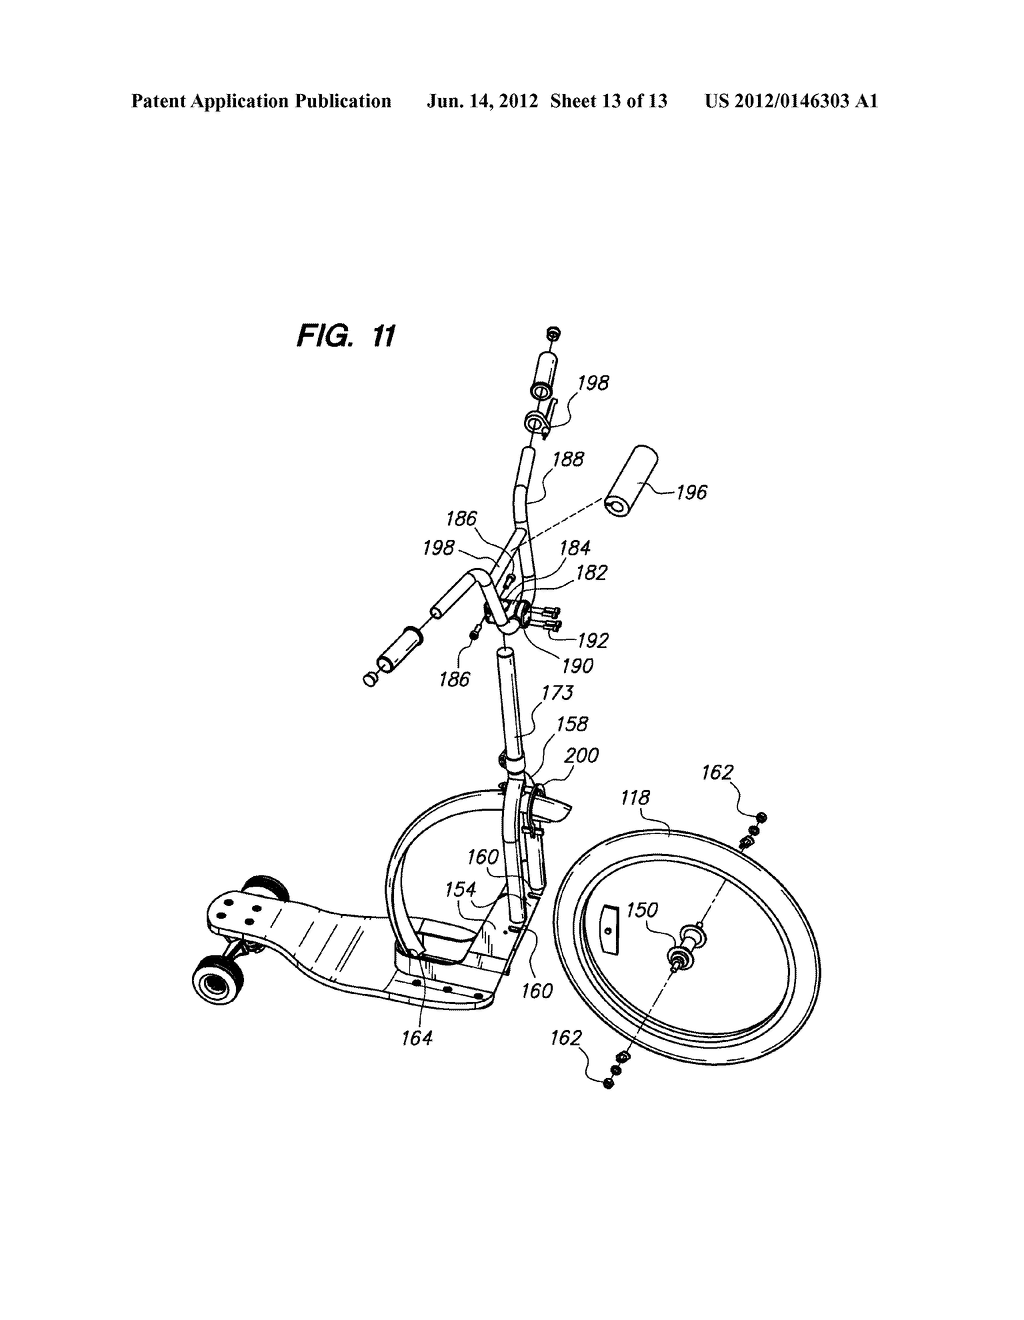 hight resolution of three wheeled scooter with rear skate truck and fixed front wheel diagram schematic and image 14